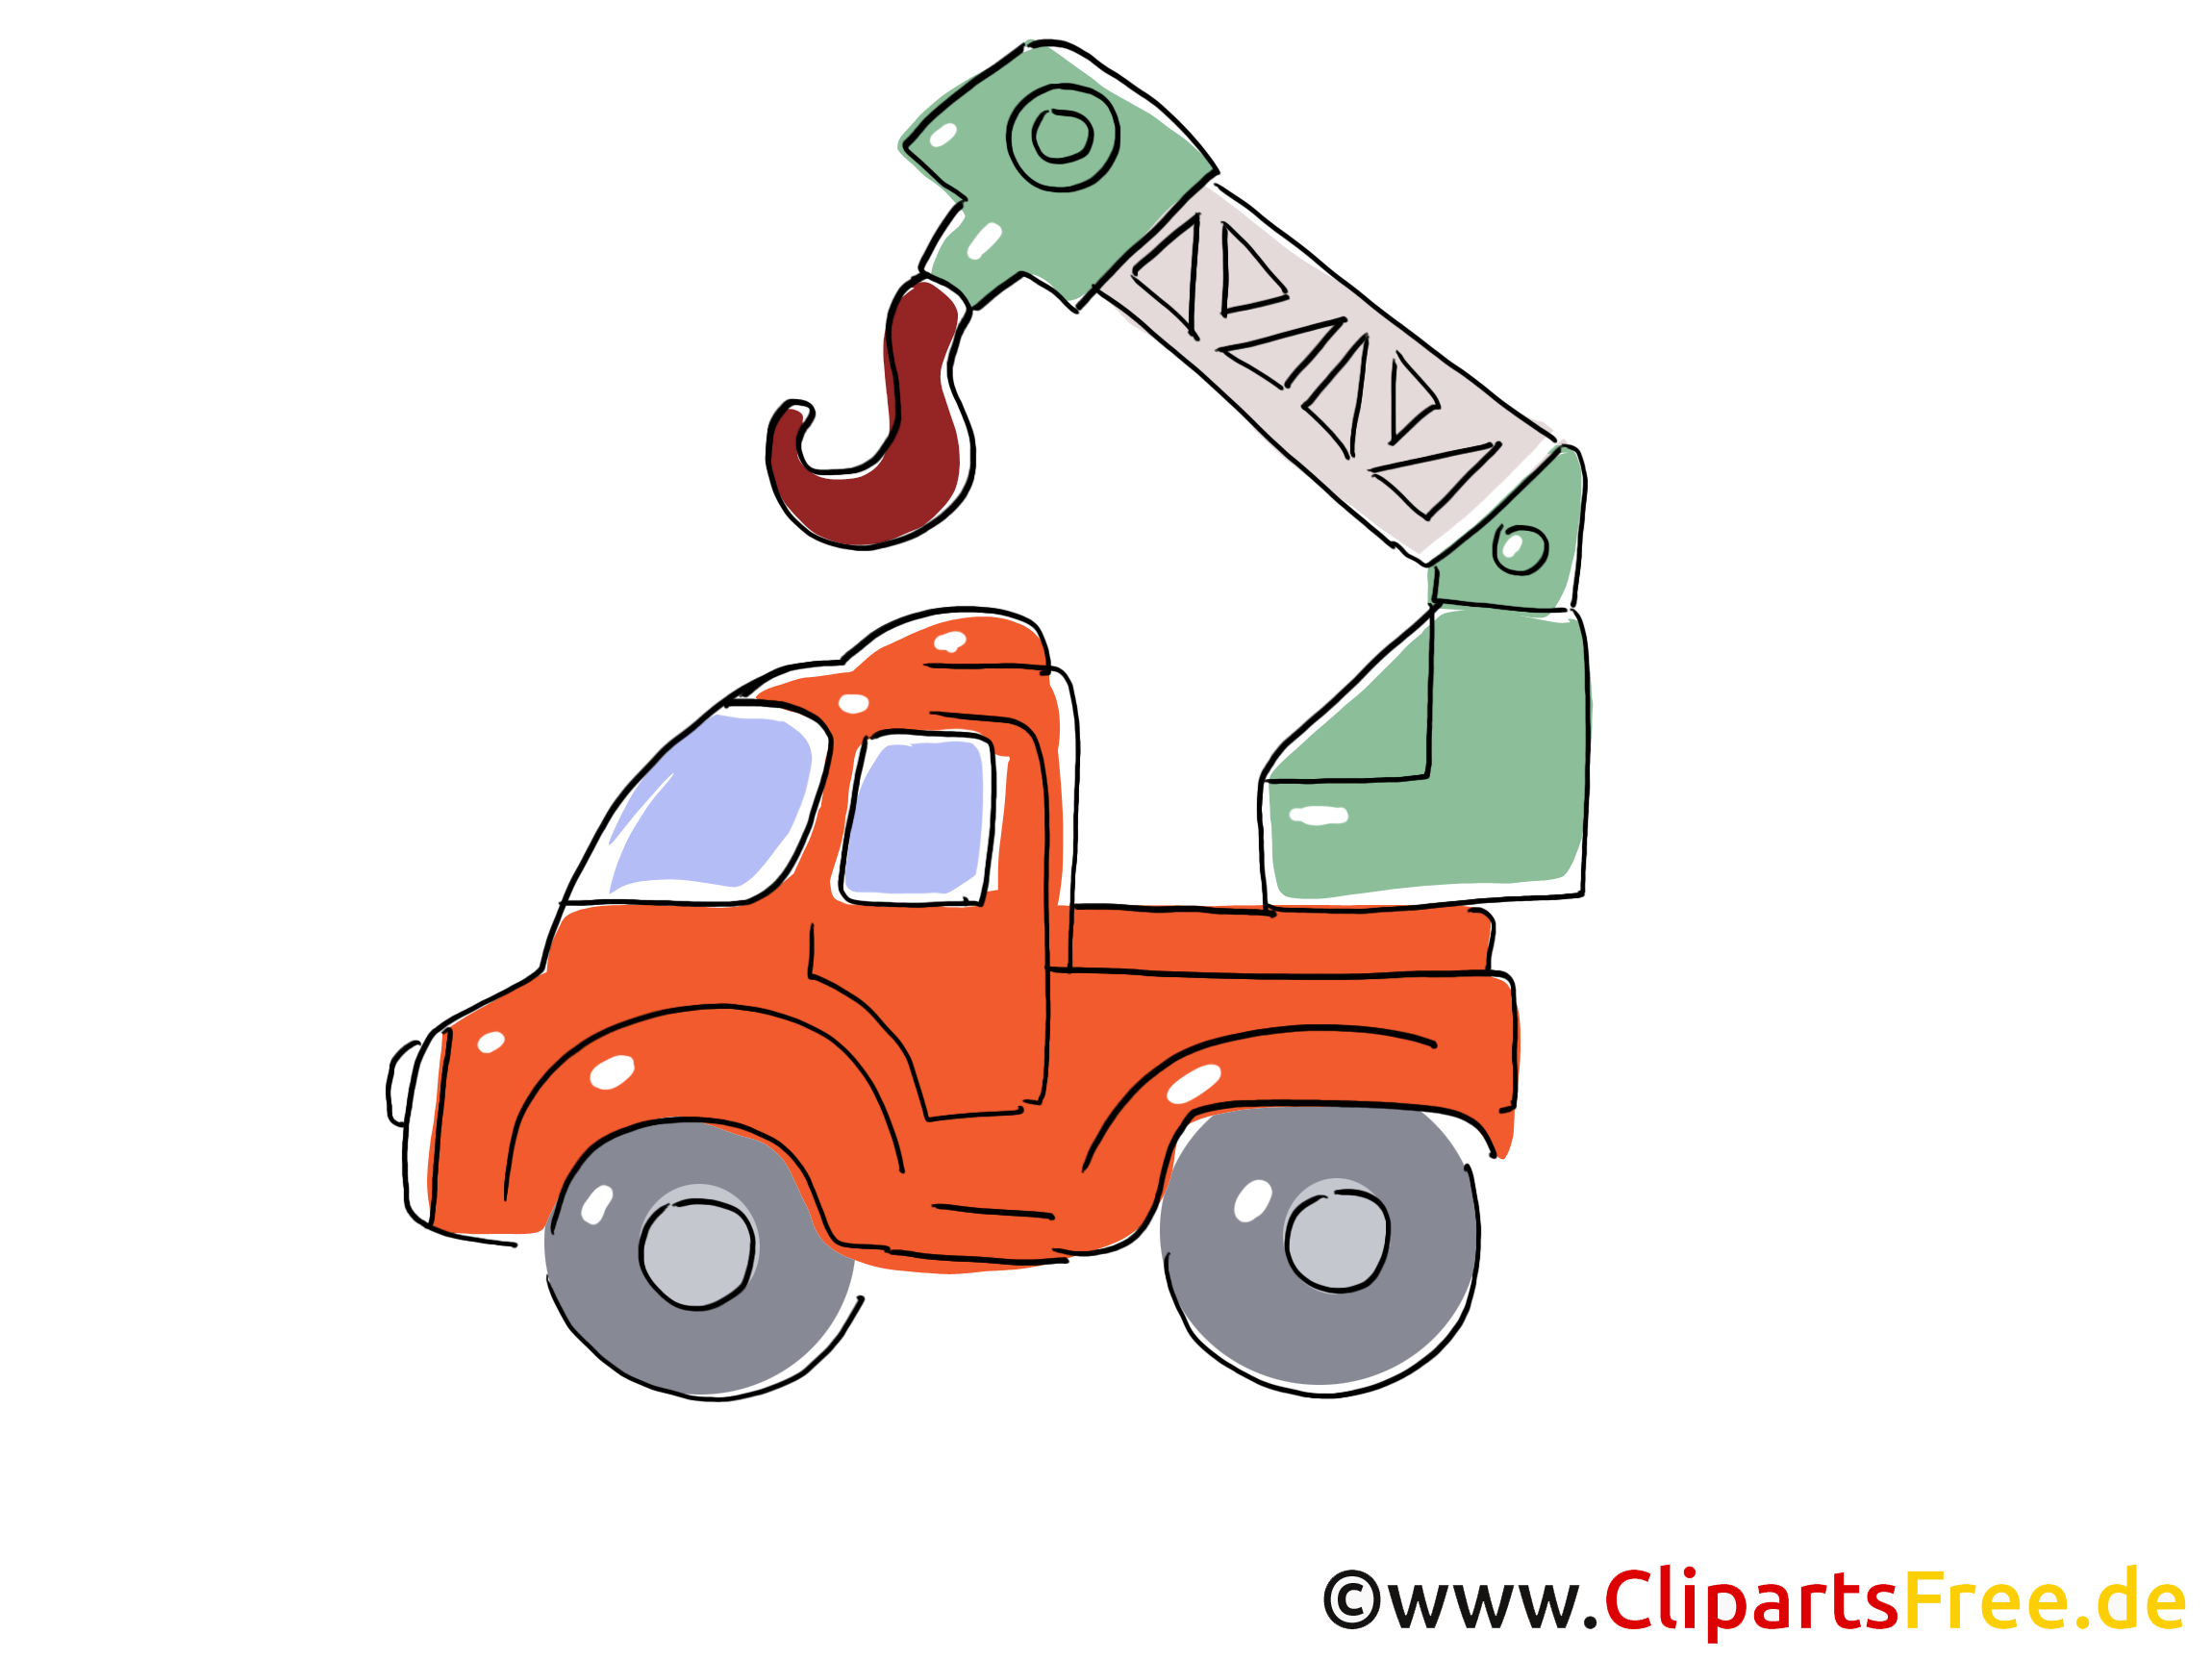 LKW mit Baukran Clipart, Bild, Cartoon, Comic, Grafik.